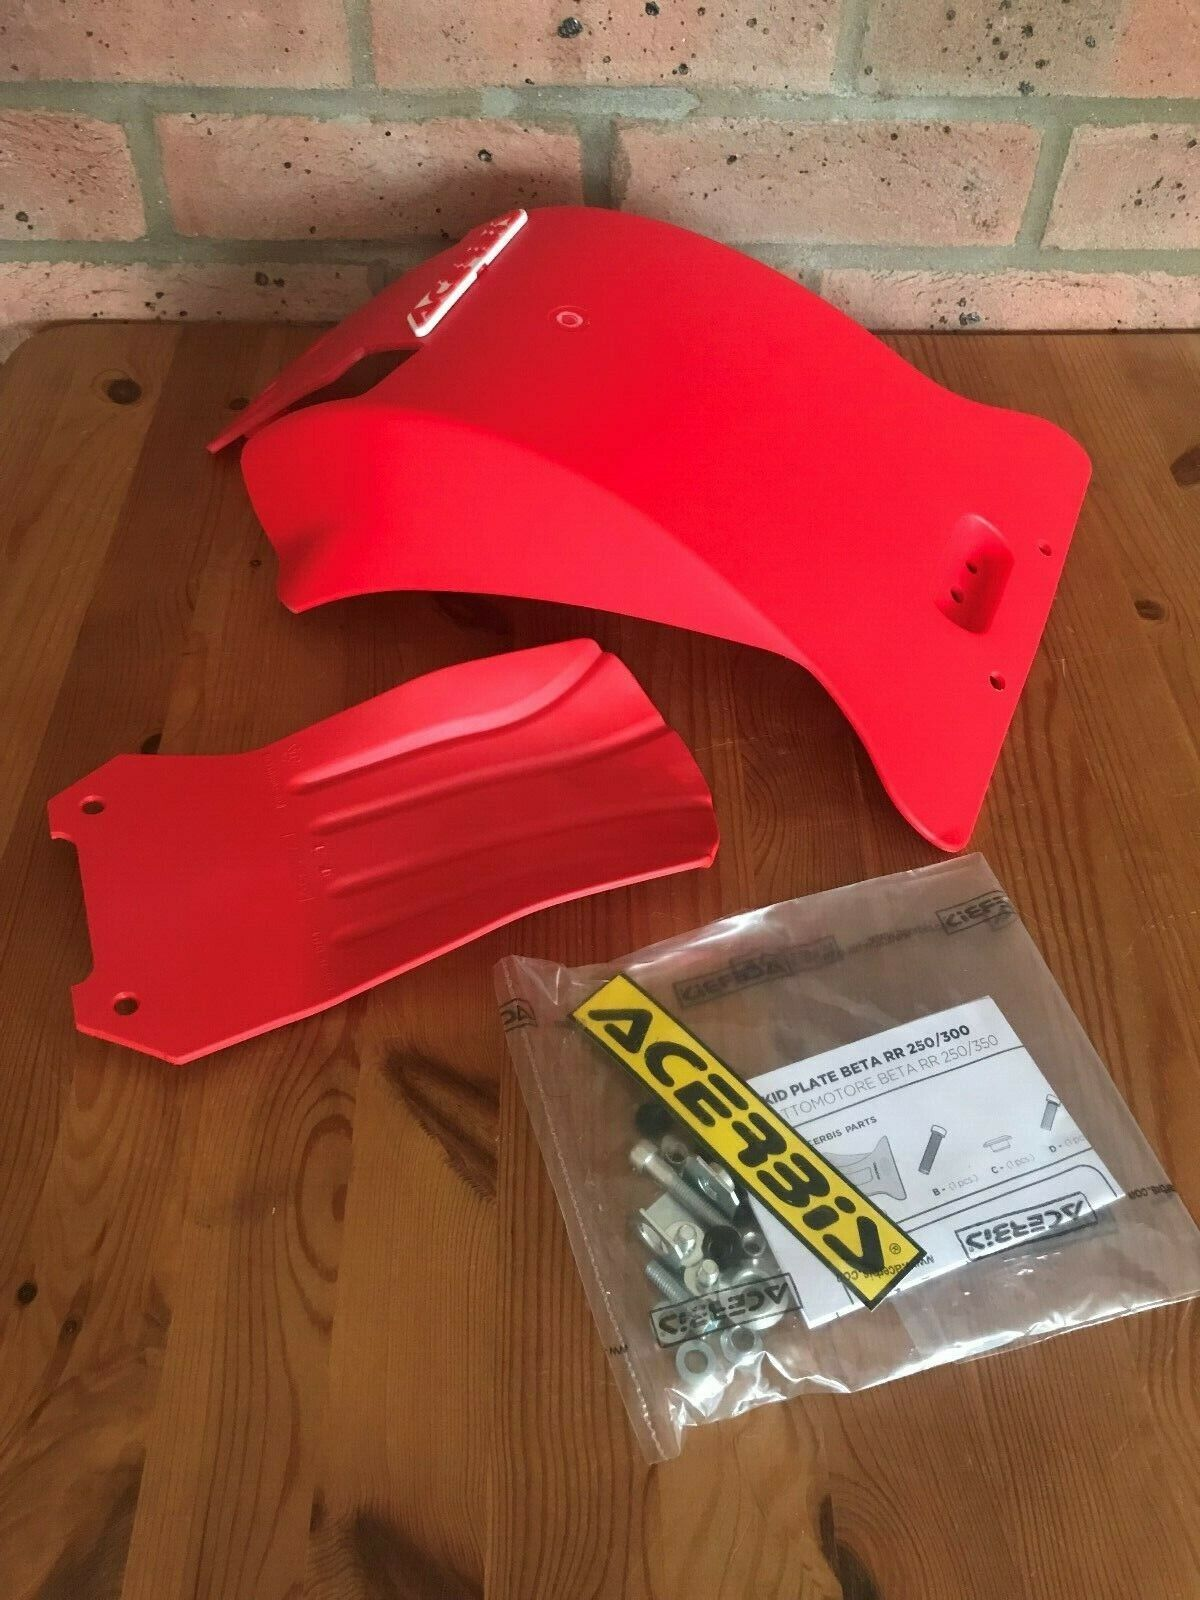 BETA RR RACING 250 300 2018- 2019 ACERBIS SKID GLIDE PLATE SUMP GUARD RED